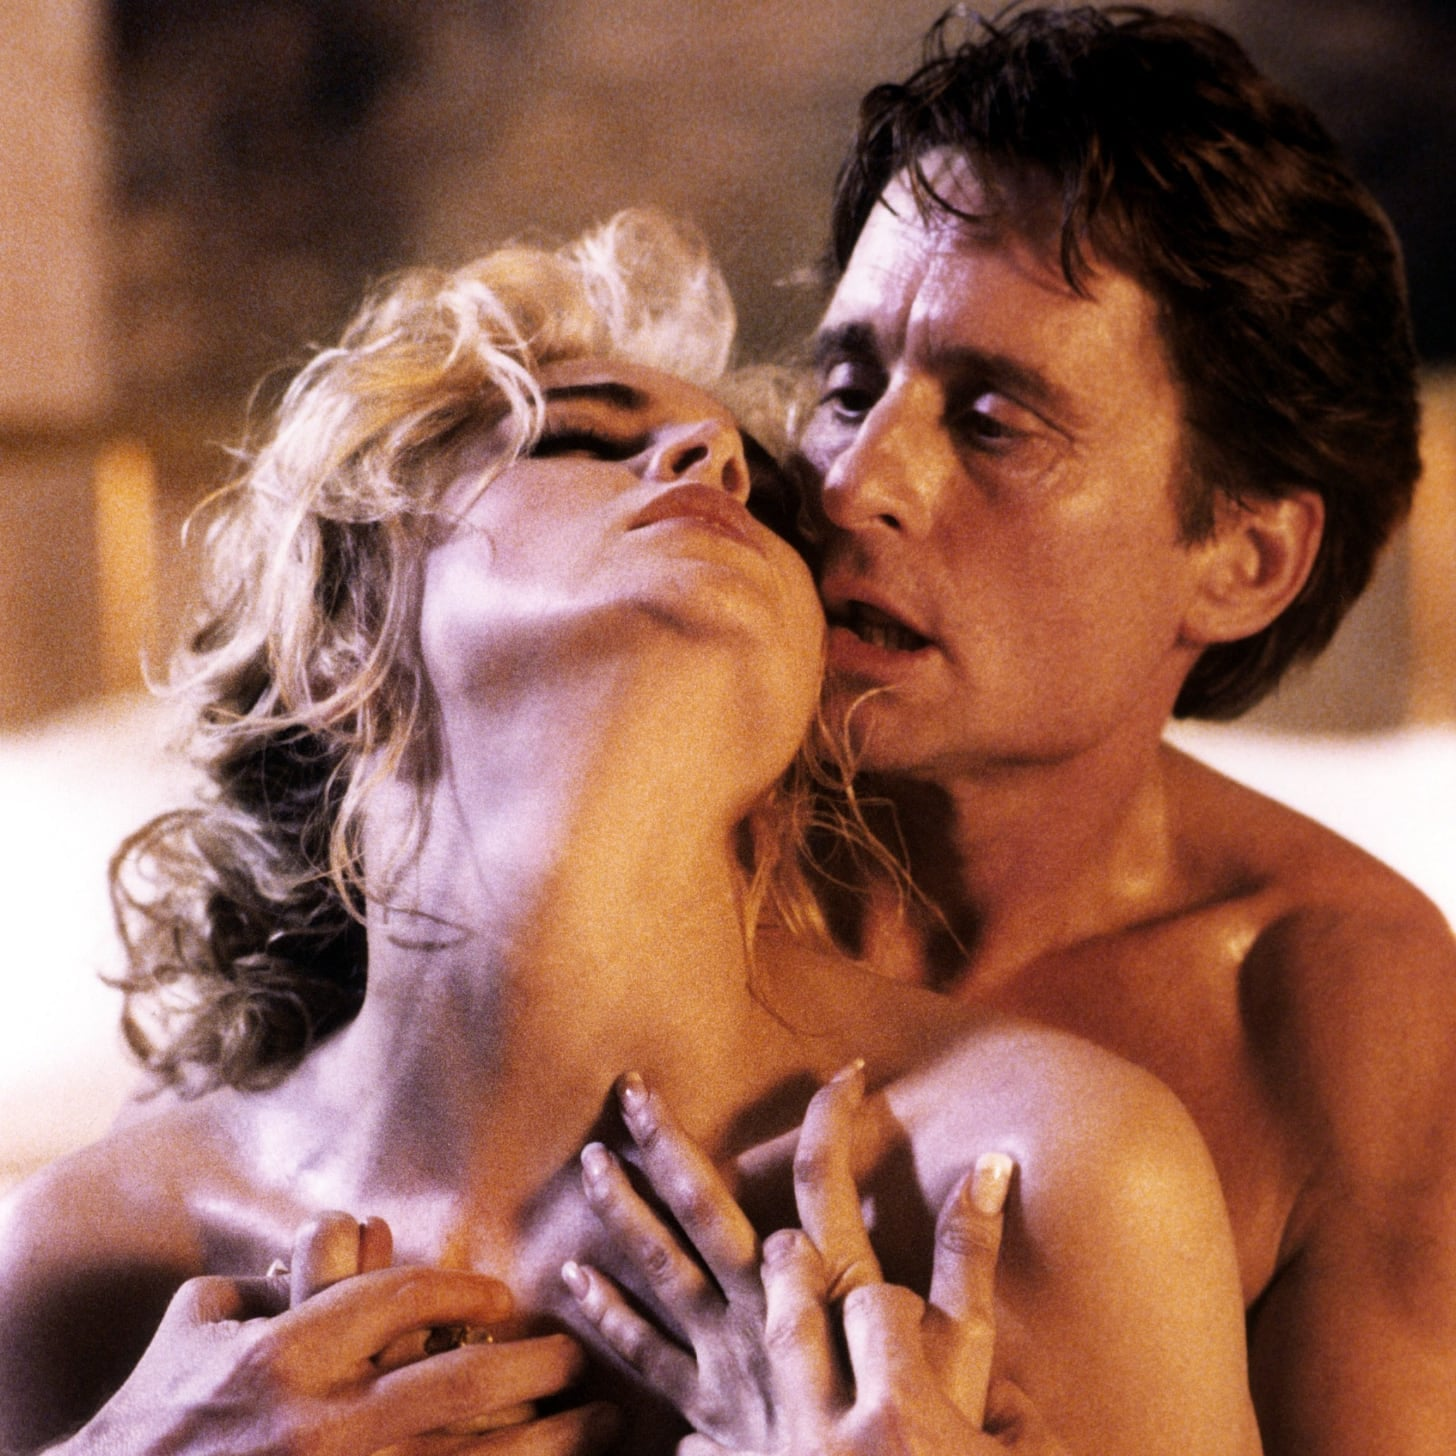 Making love x rated The Best Nc 17 Movies To Watch Popsugar Love Sex